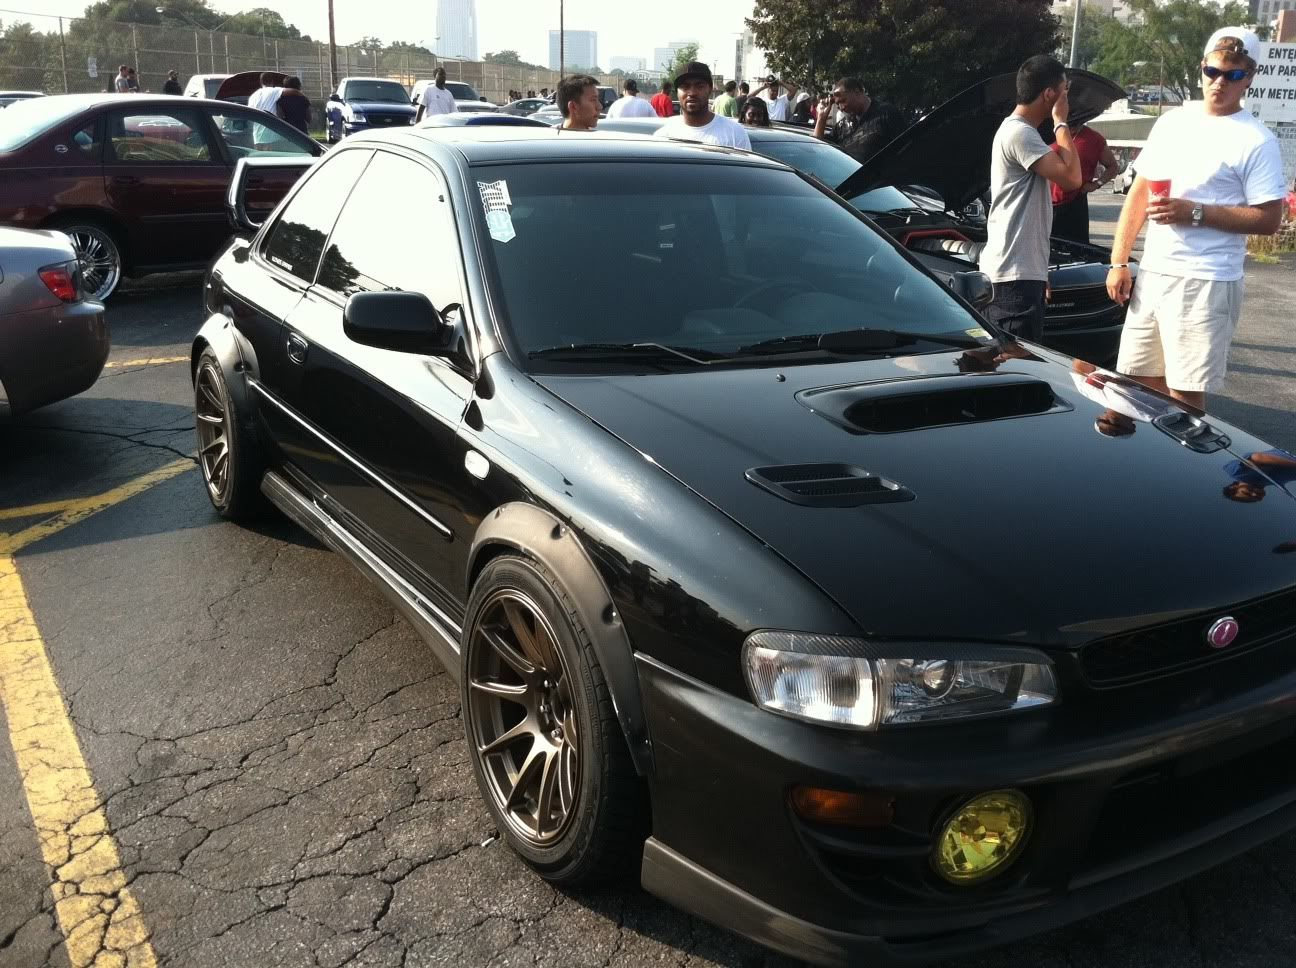 Find This Pin And More On Gc8 Liltoua's Lilttle Black Beast  Page 22  Subaru  Impreza & Rs Forum